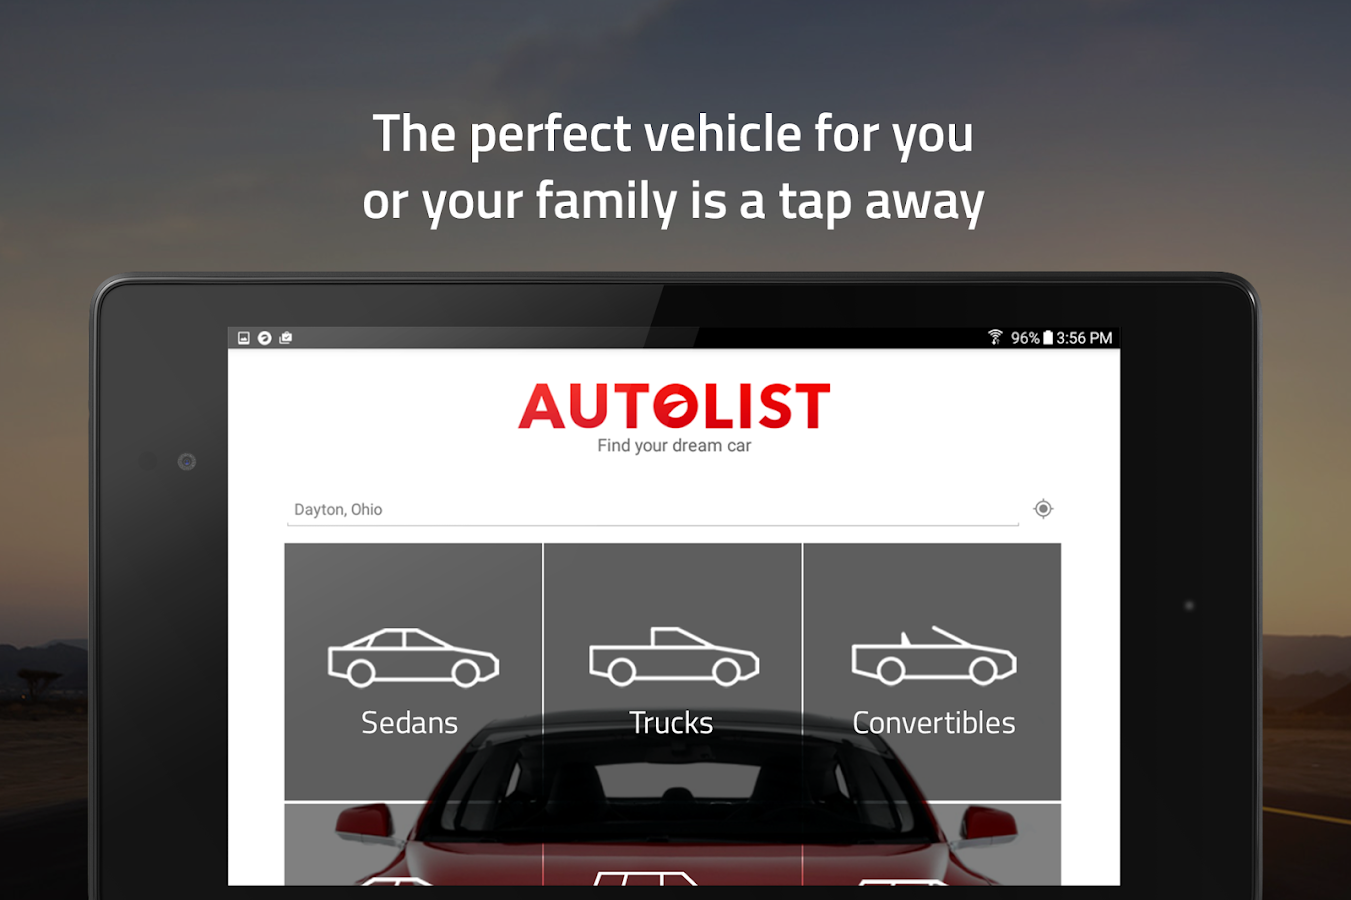 Used Cars and Trucks for Sale - Android Apps on Google Play